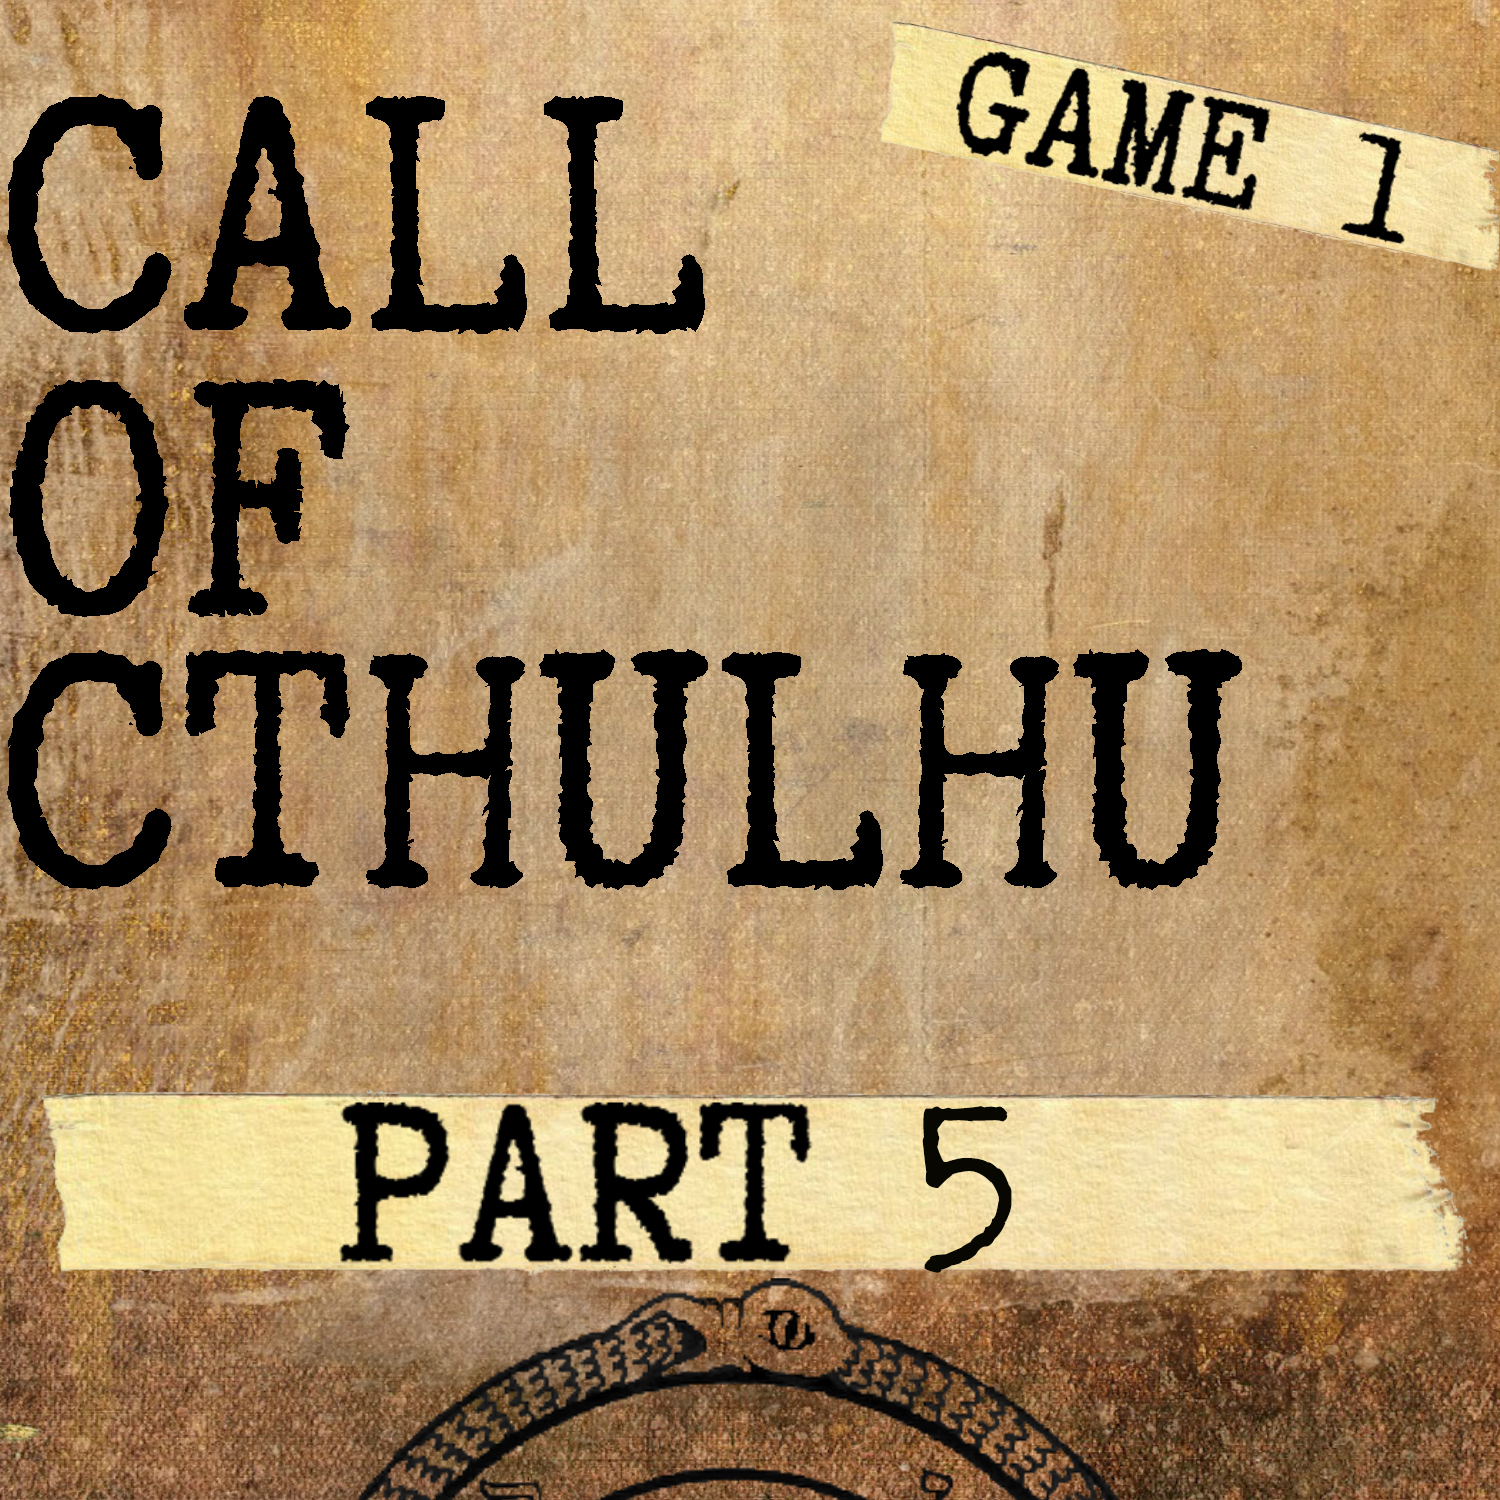 Artwork for Call of Cthulhu - Game 1: Part 5